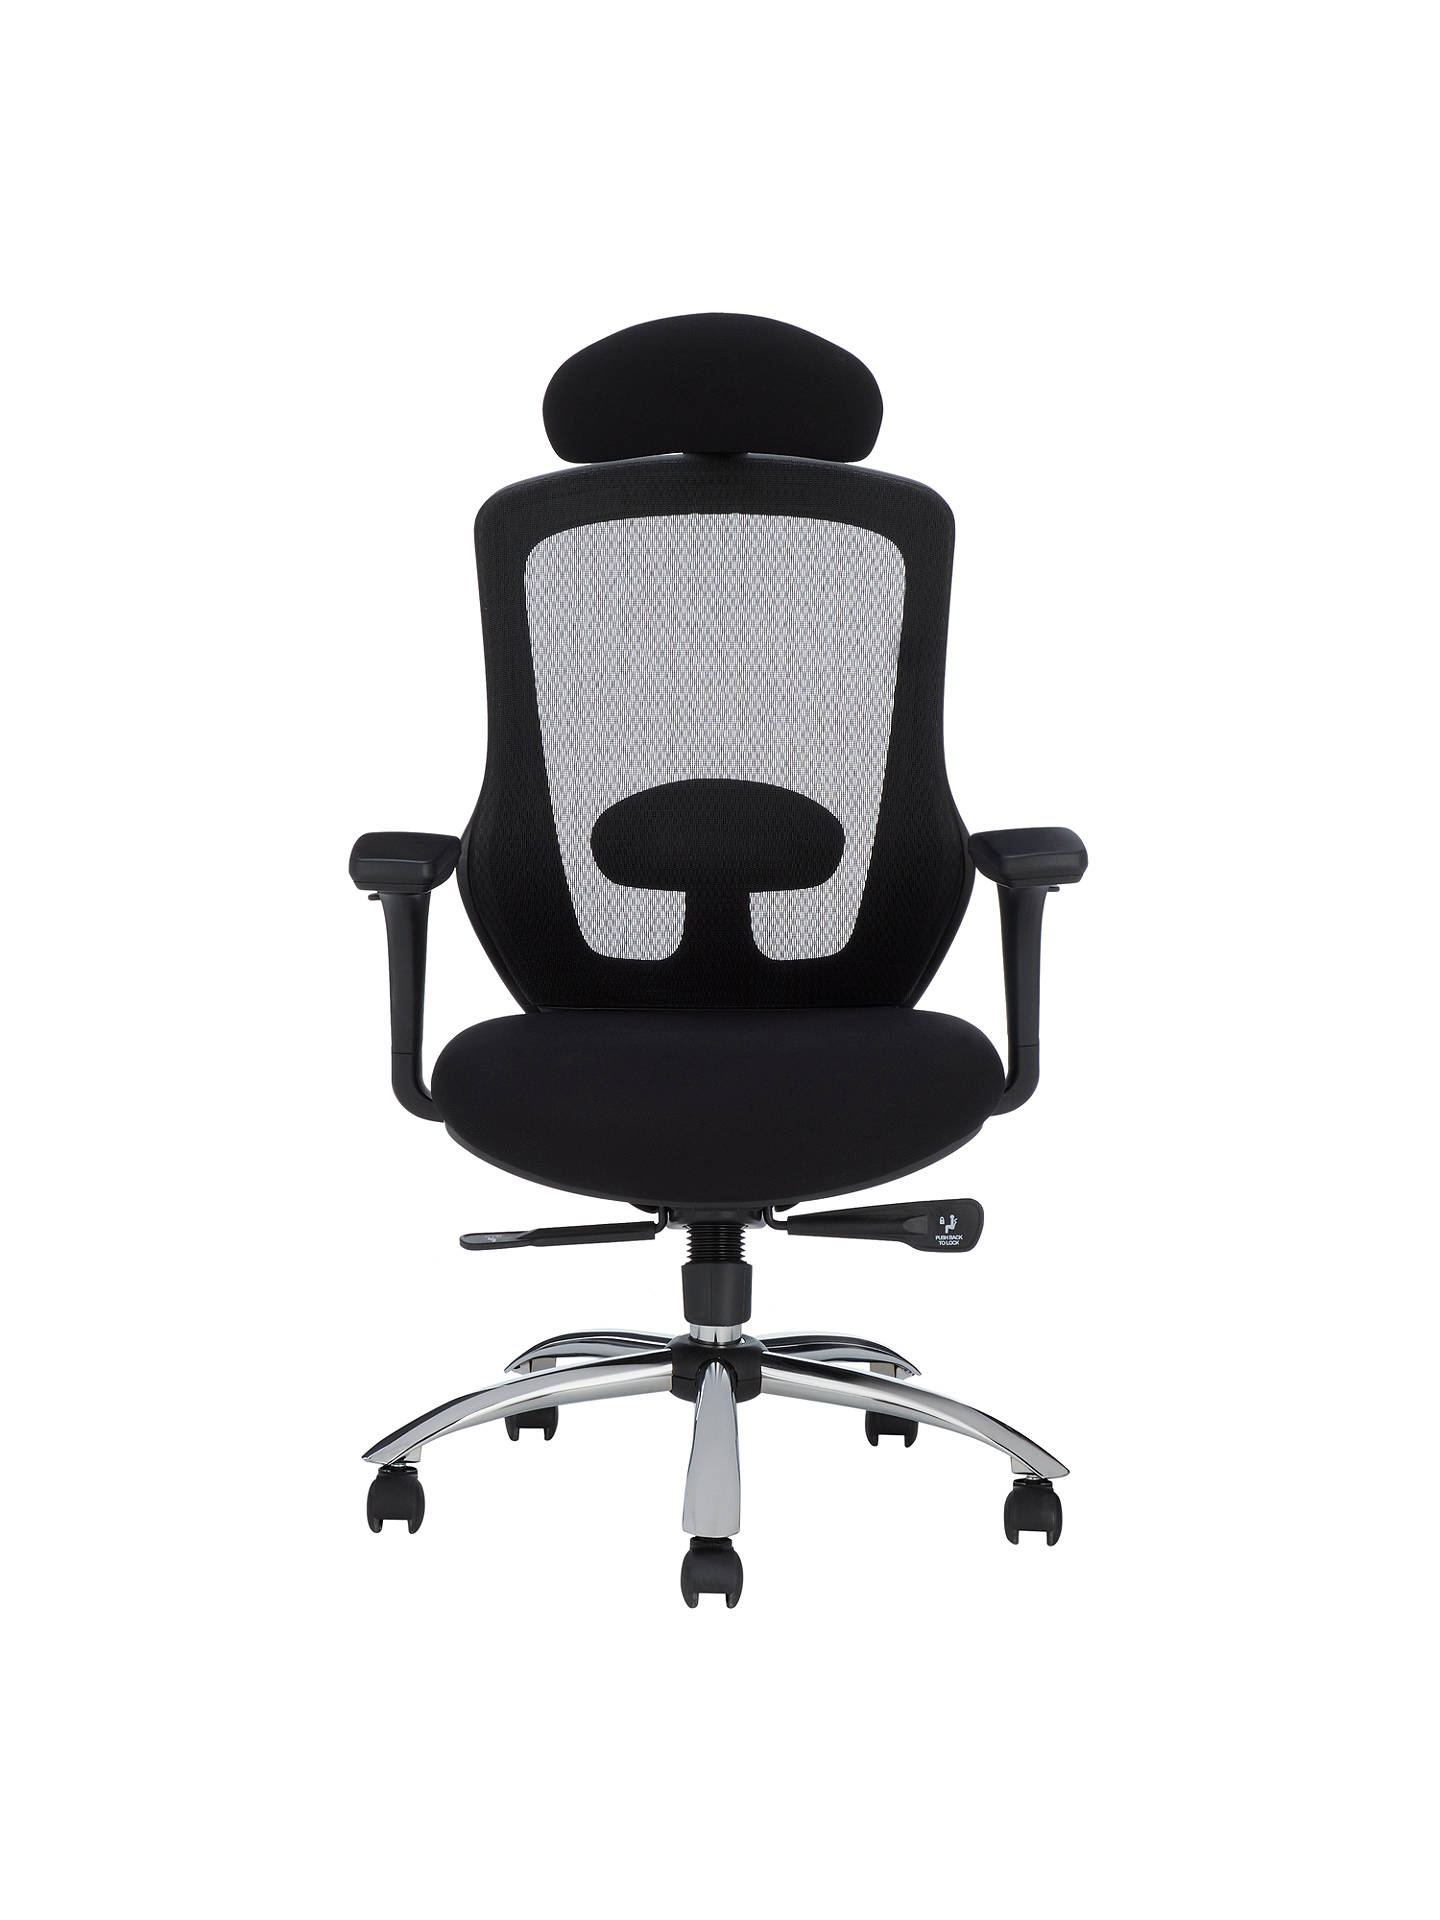 Buy John Lewis & Partners Isaac Ergonomic Office Chair, Black Online at johnlewis.com